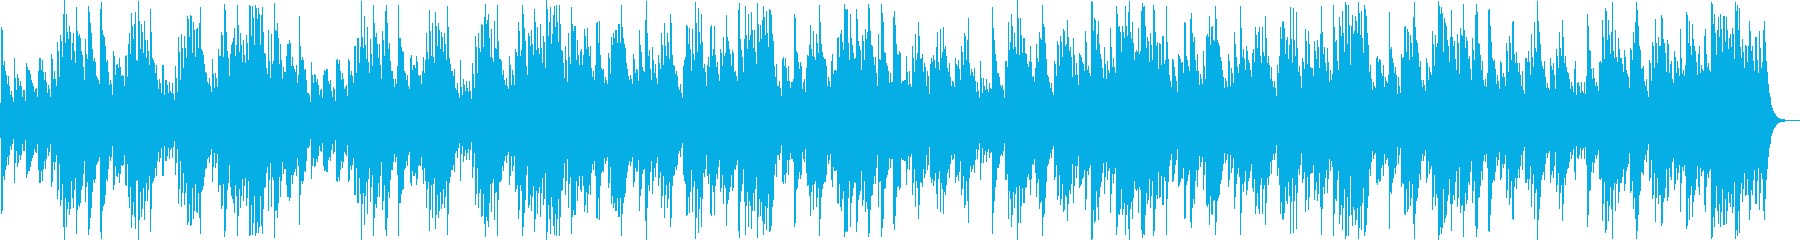 Aria / Bach (Orgel) on the G line's reproduced waveform